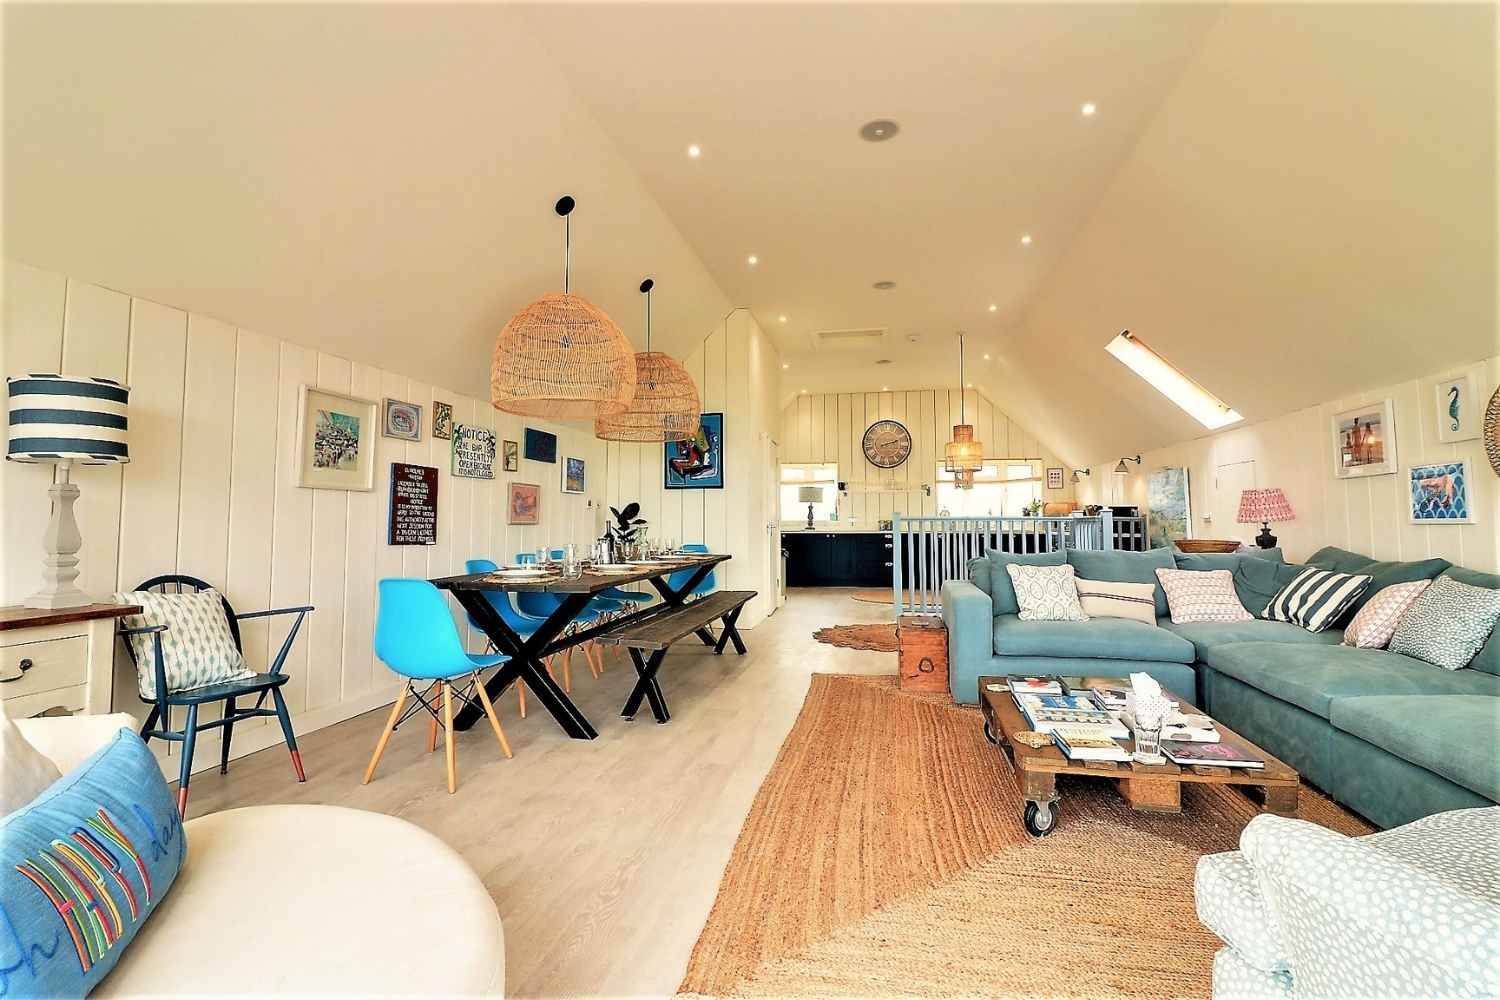 Huge sociable living, dining and kitchen space